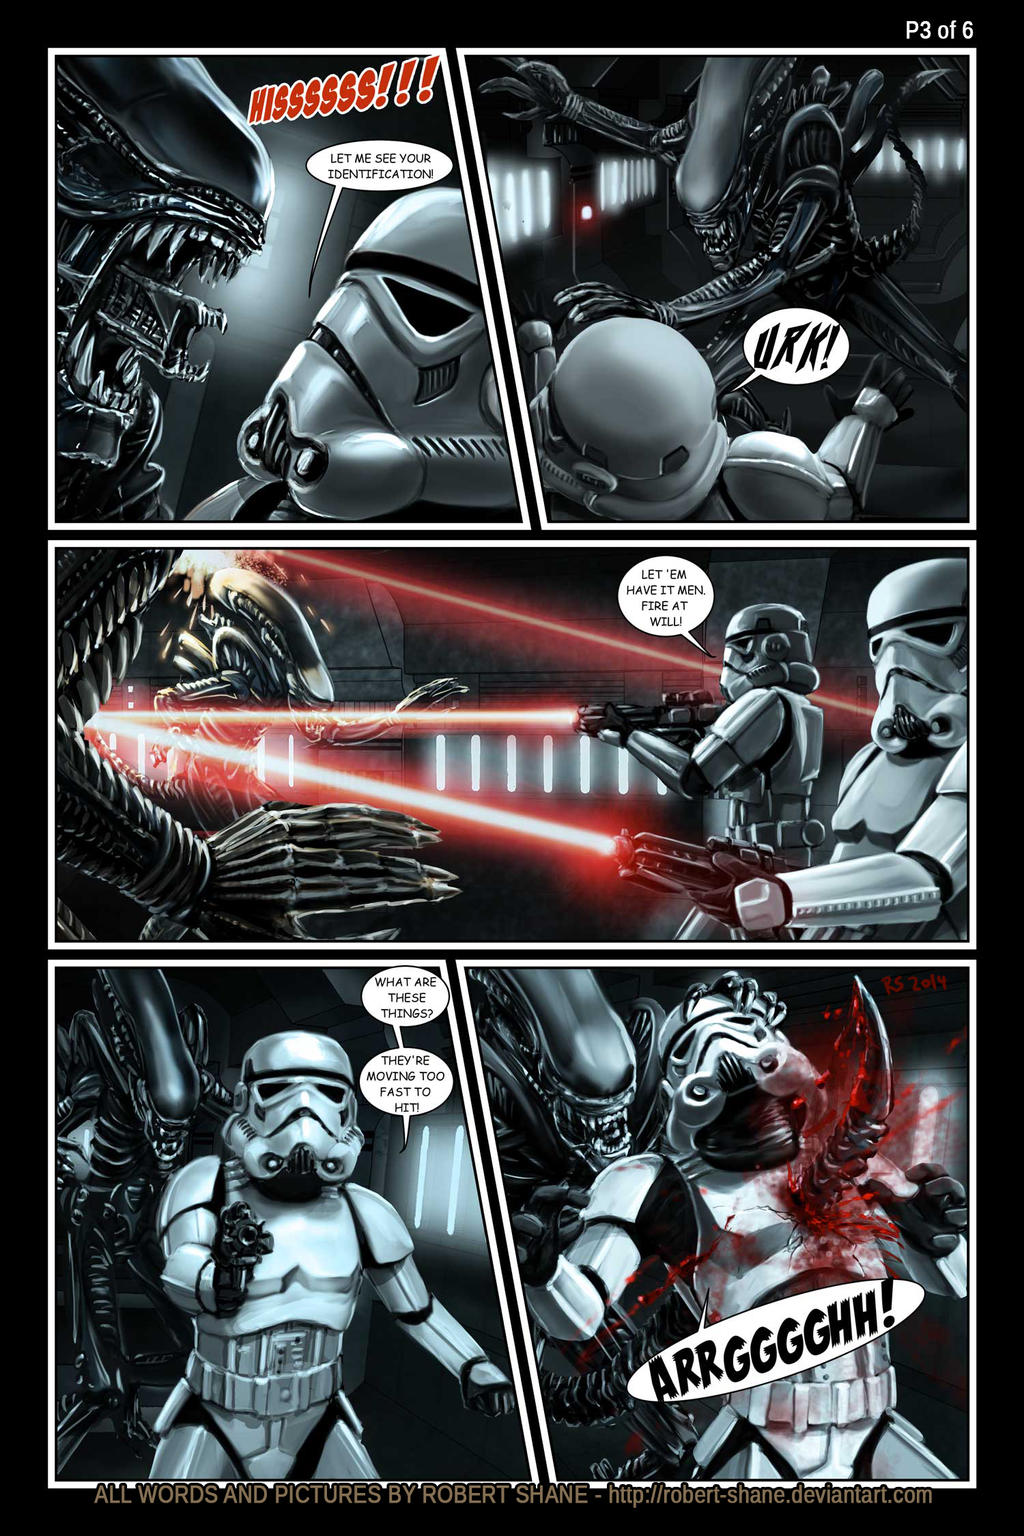 Star Wars vs Aliens by Robert Shane Page 3